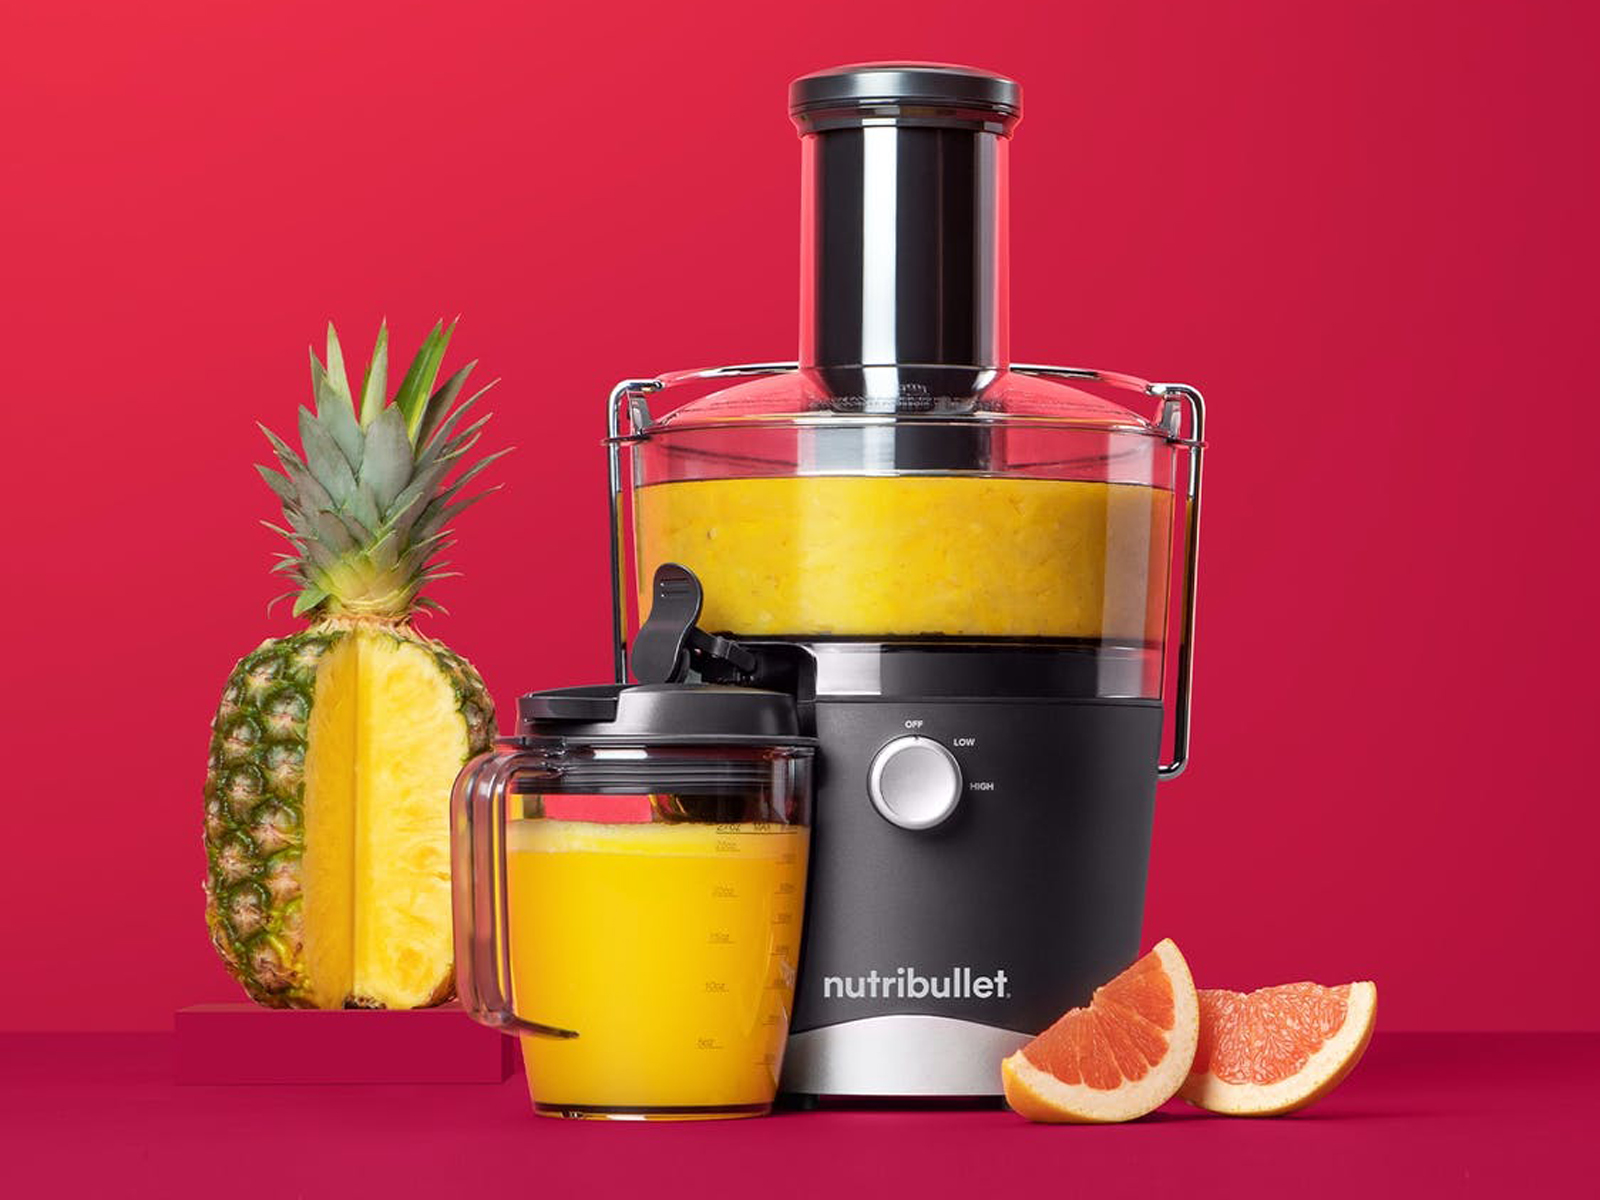 nutribullet juicer